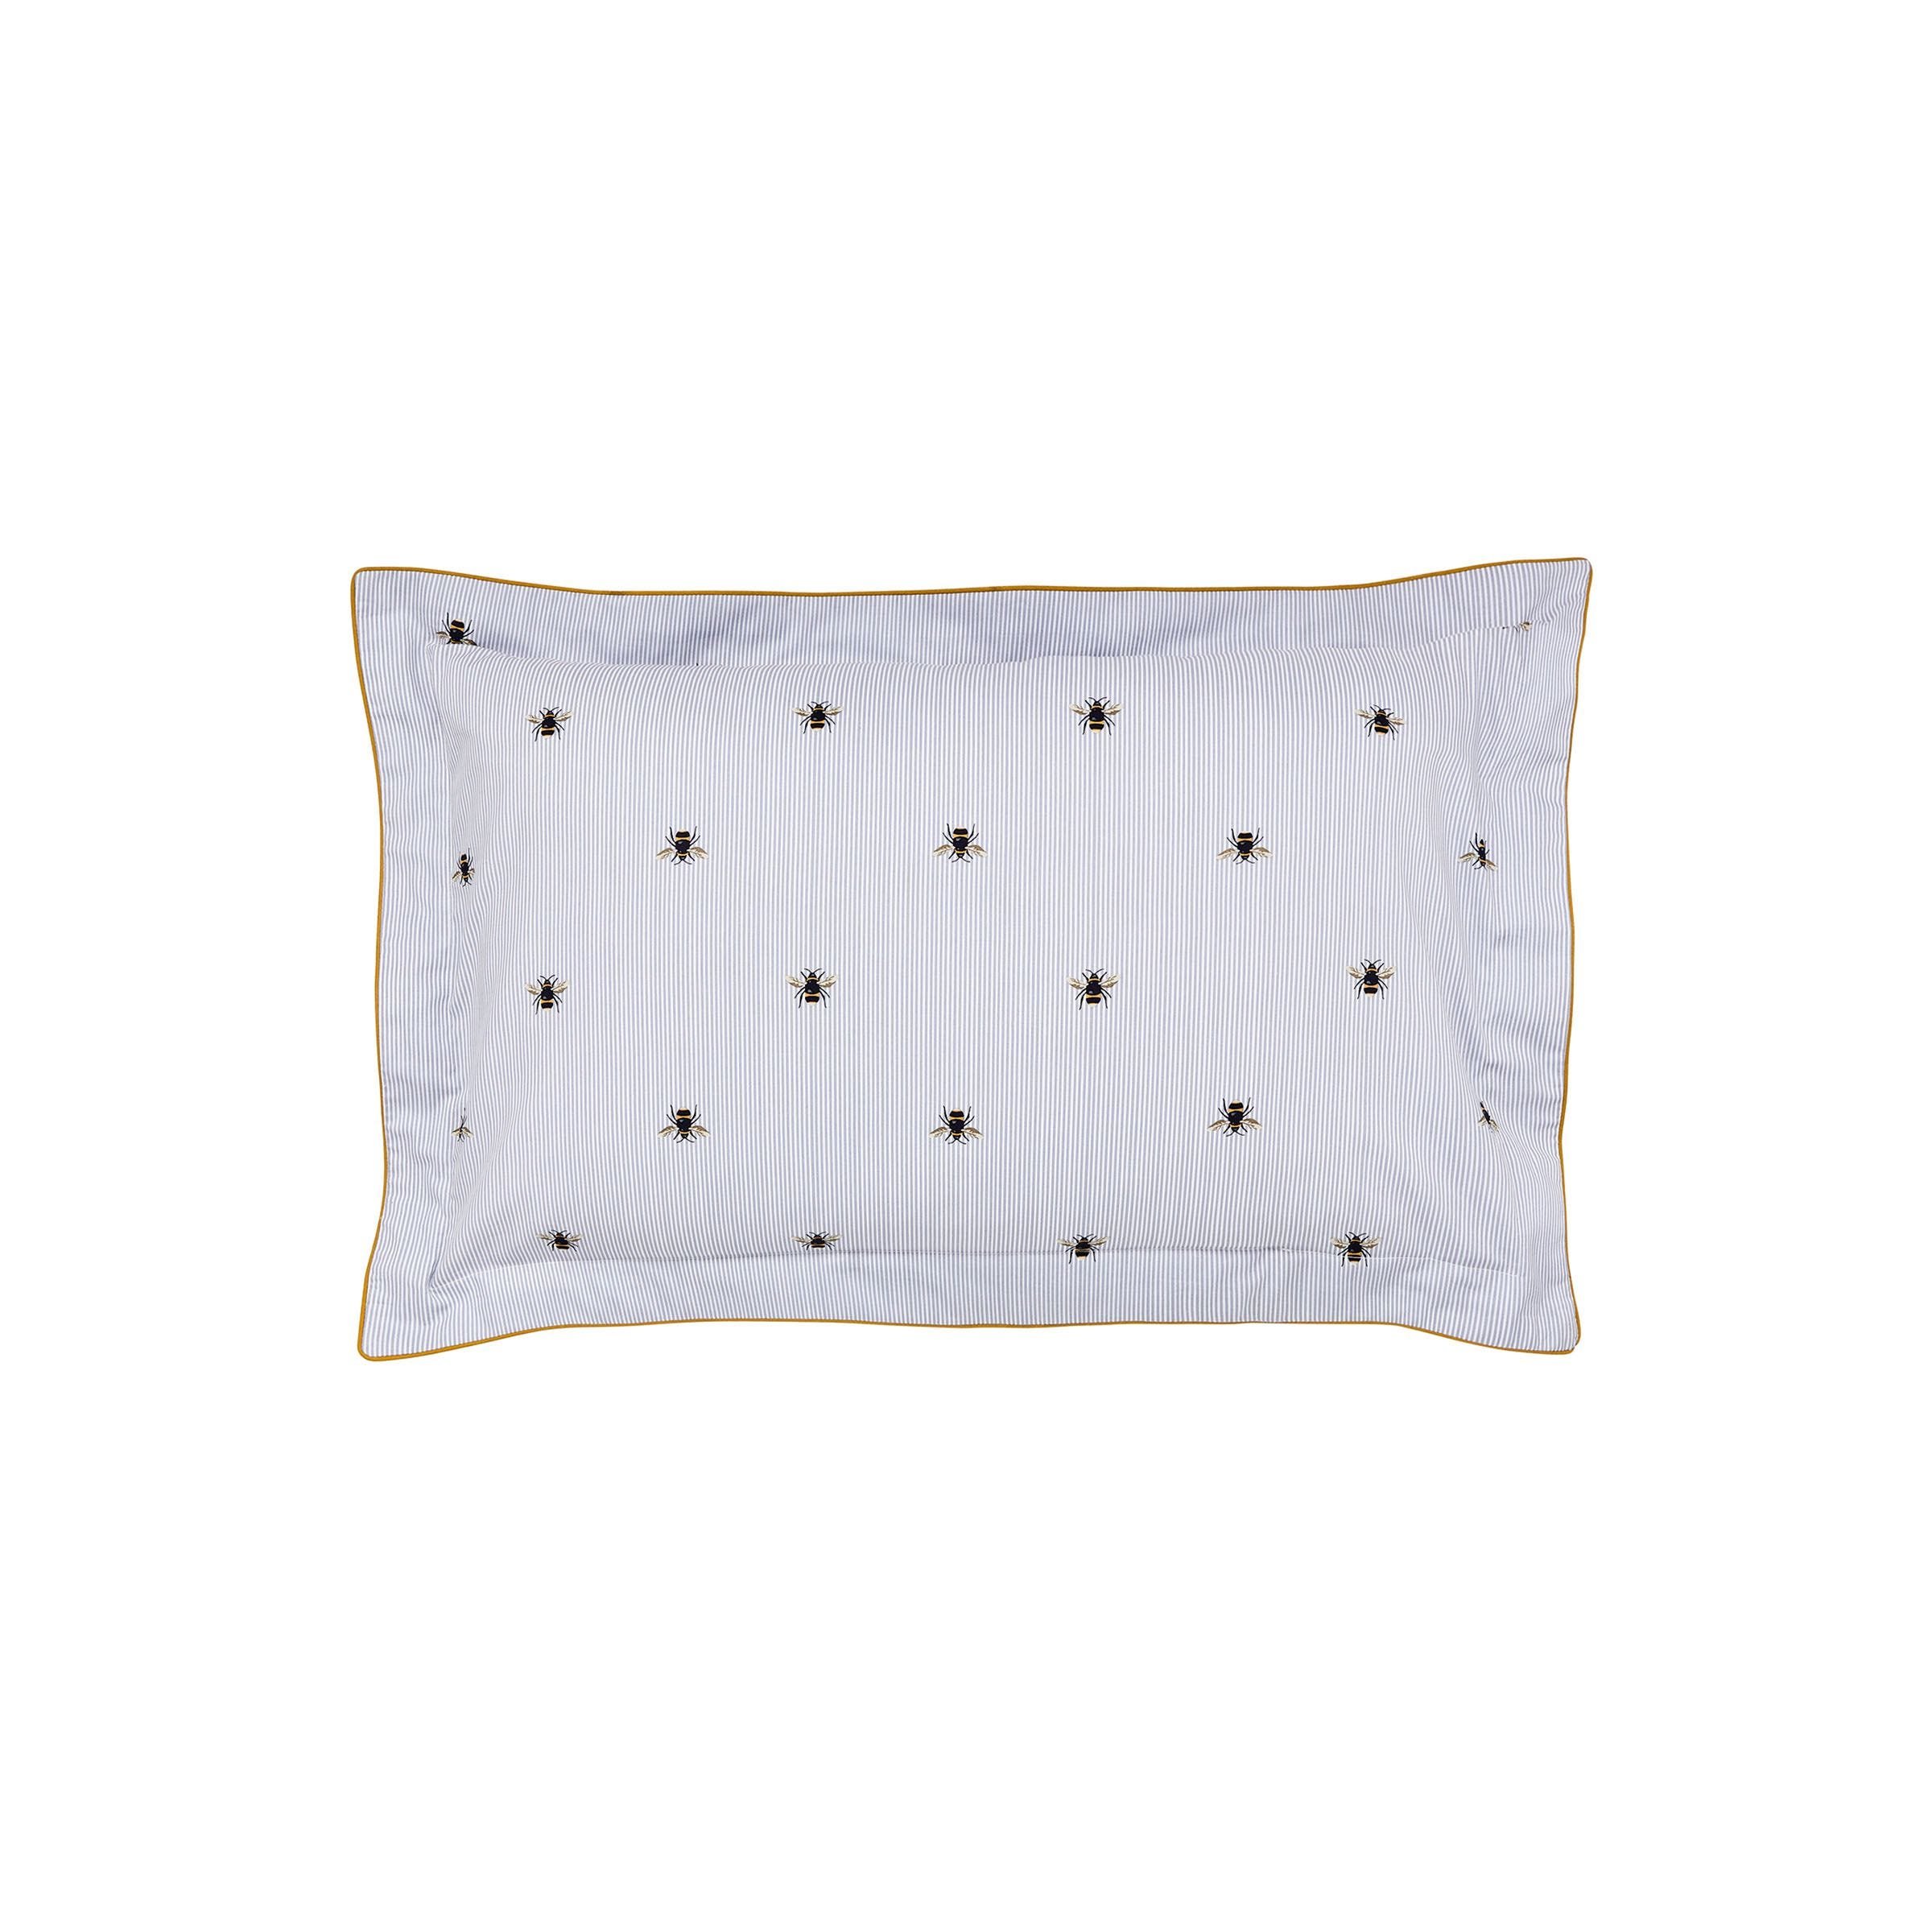 BOTANICAL BEE PILLOW CASE OXFORD - BLUE